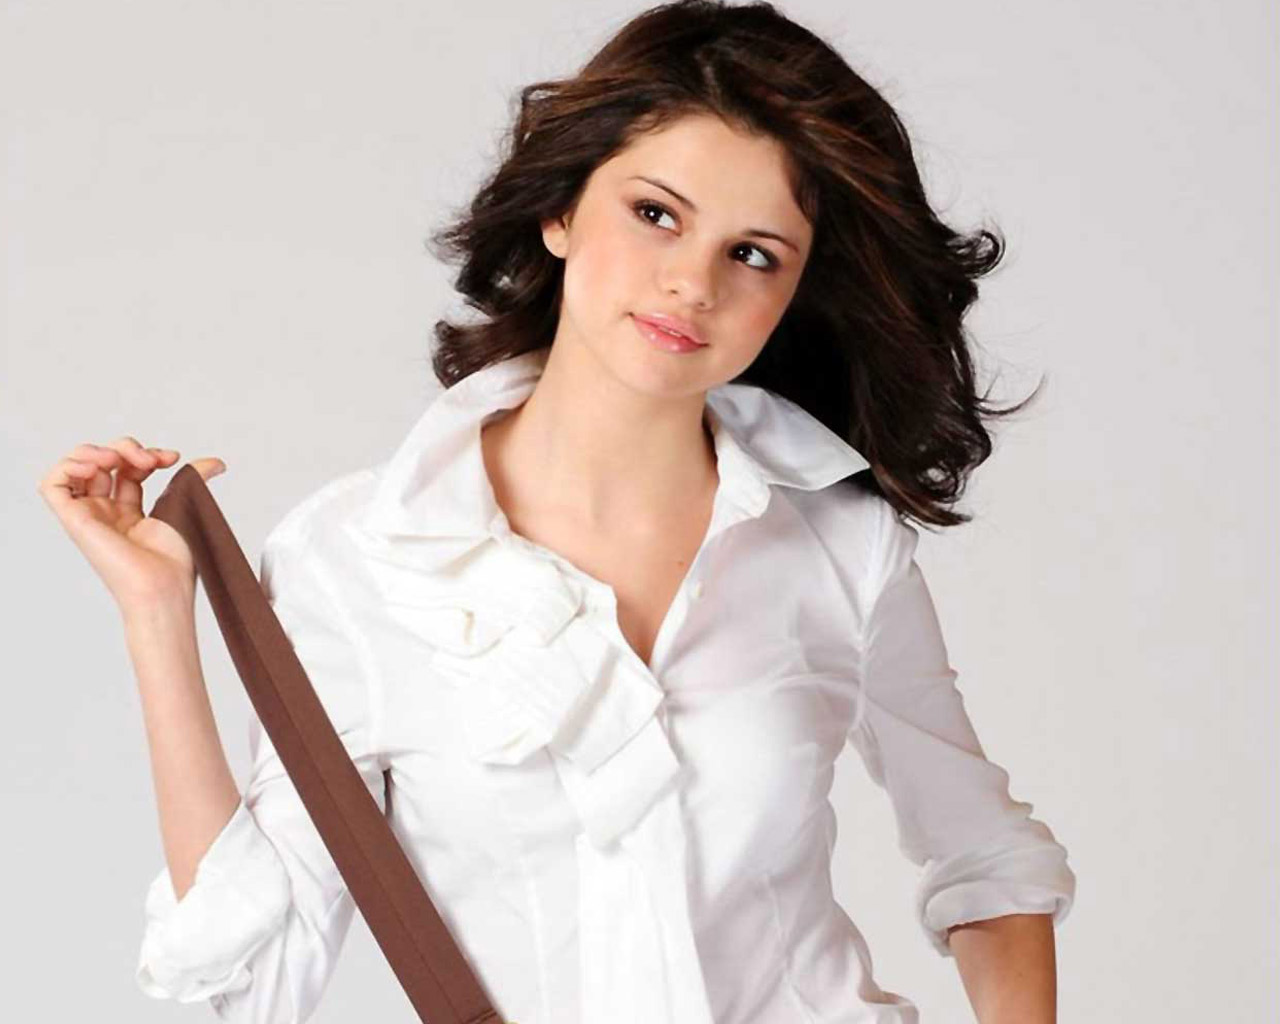 Cute Wallpapers Com Best Pics Store Selena Gomez Cute Hd Wallpaper Collection